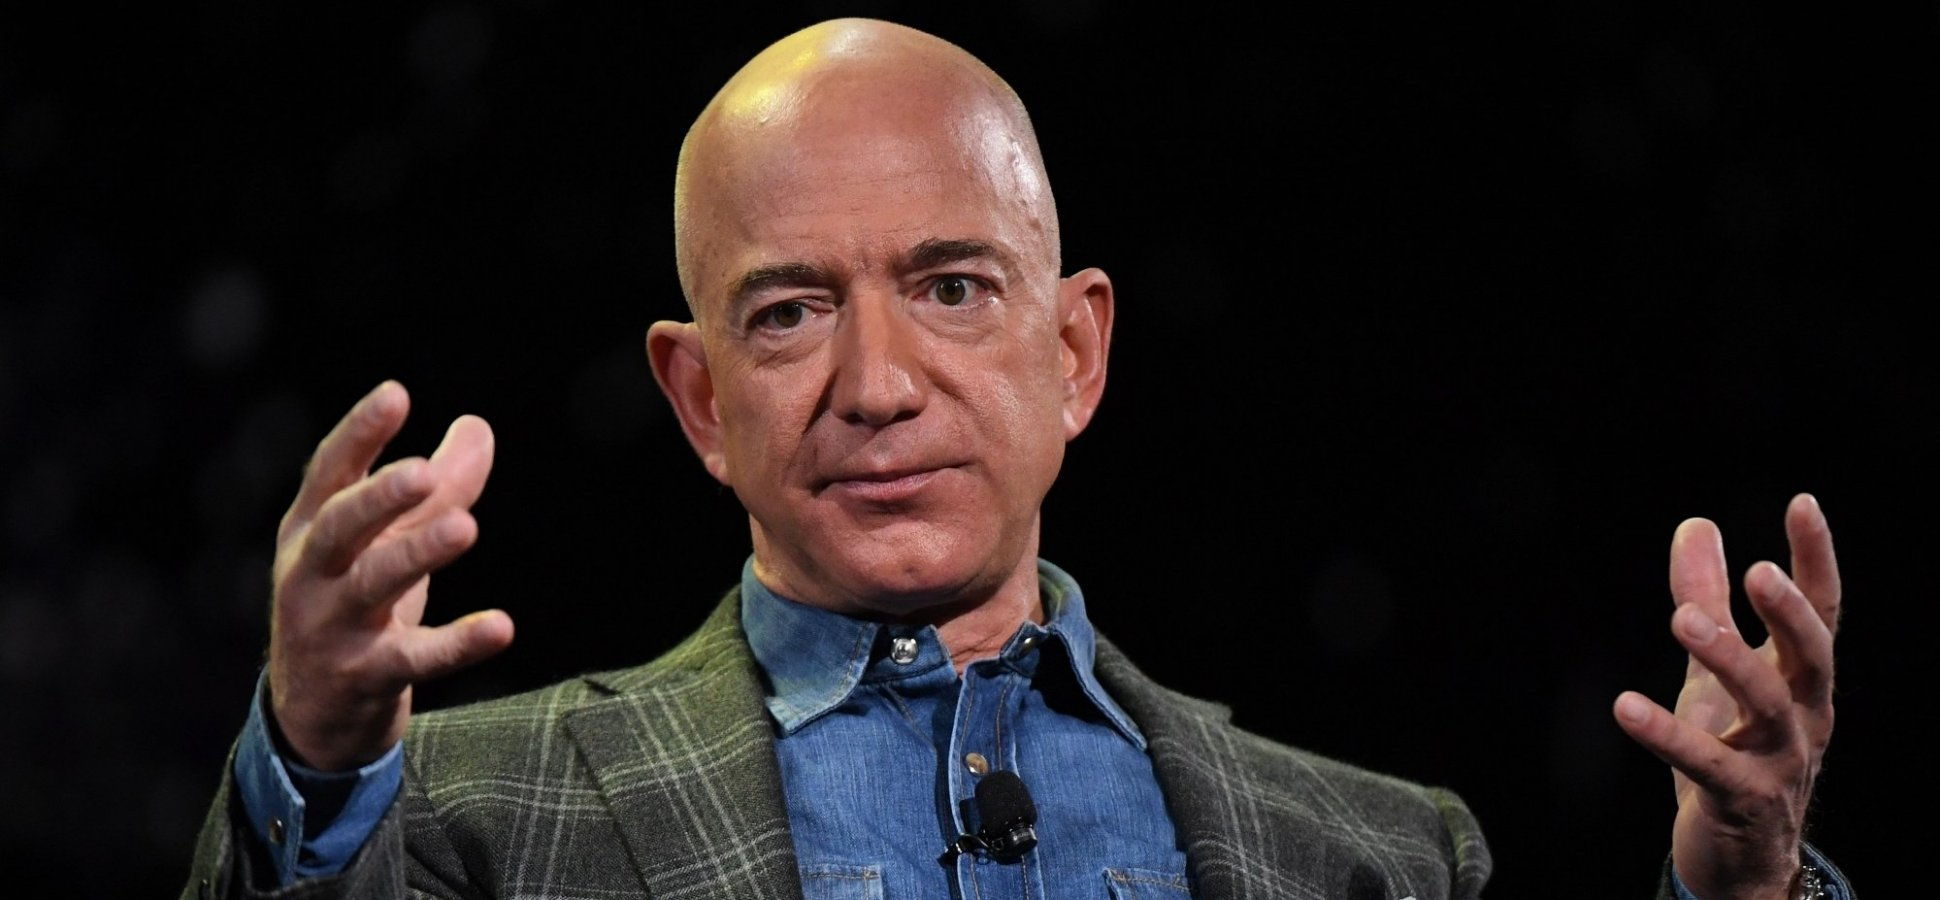 Move Over, Steve Jobs. A New Generation of Founders Is Following the 'Gospel of Bezos' Instead